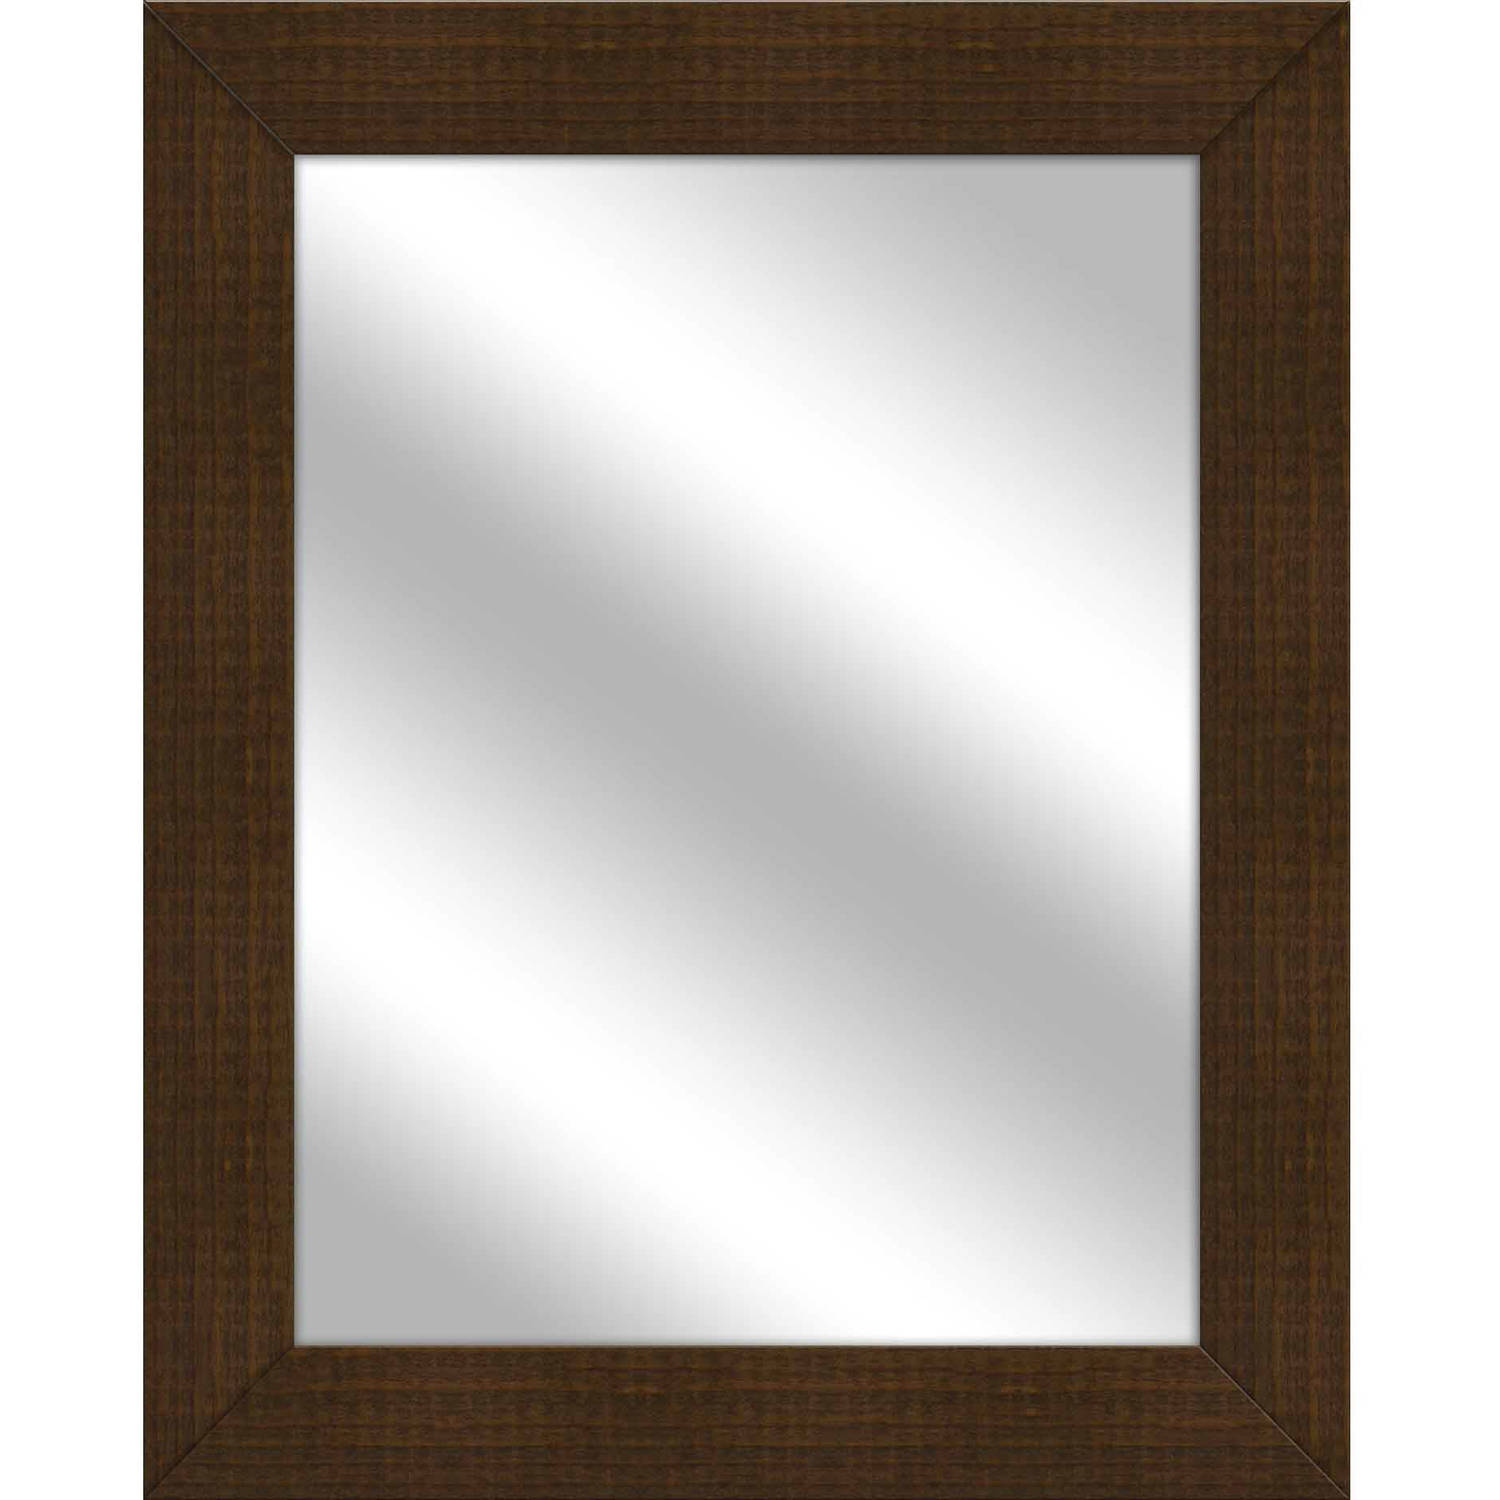 Vanity Mirror, Natural Wood, 25.5x31.5 by PTM Images